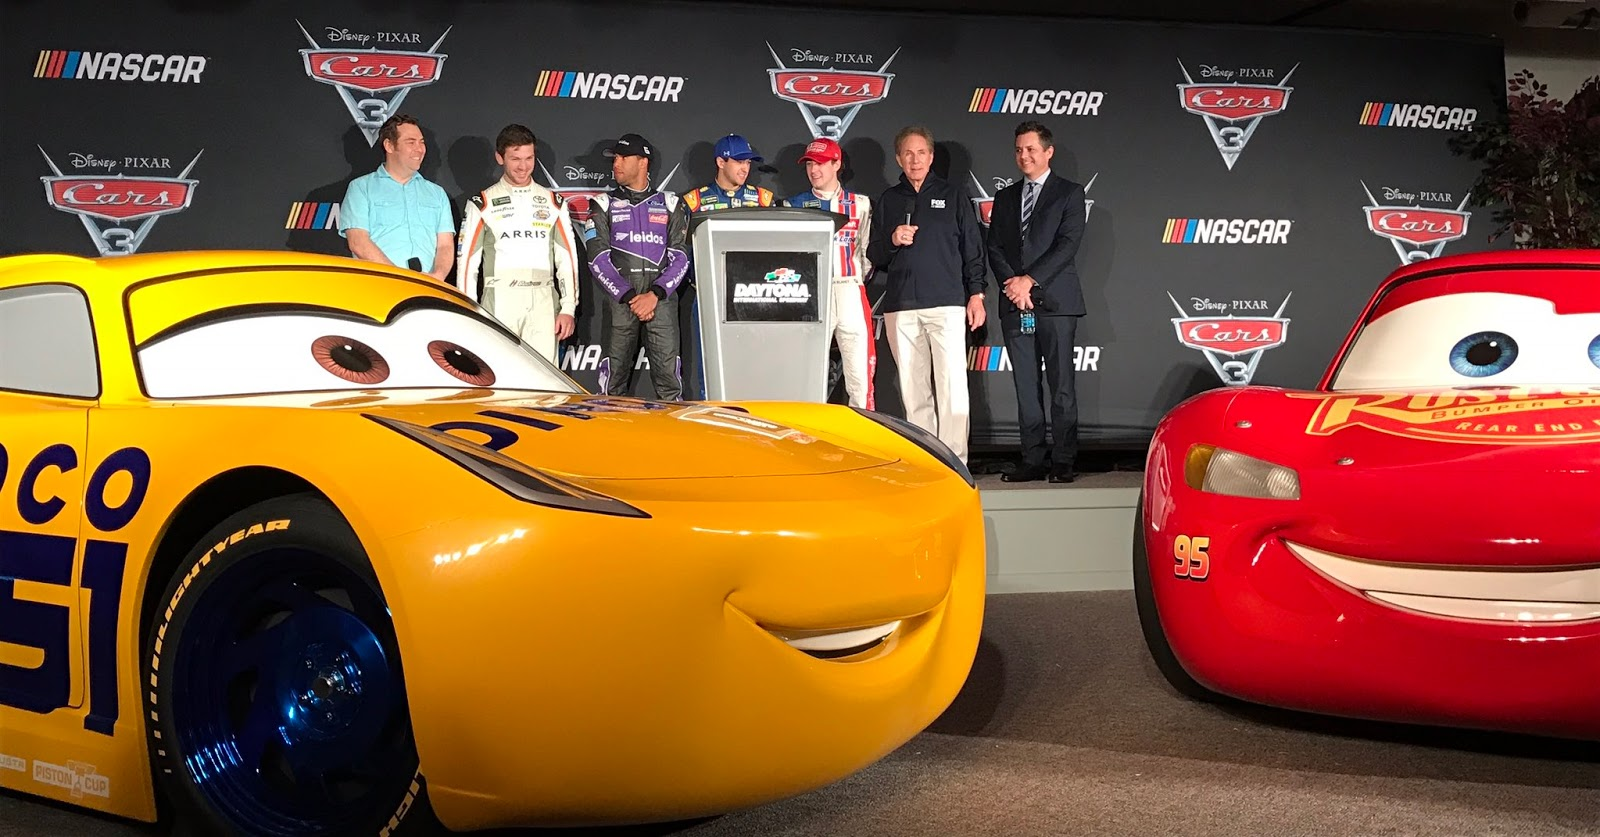 Cars 3 News Nascar Press Event Unveils Life Size Dinoco Cruz